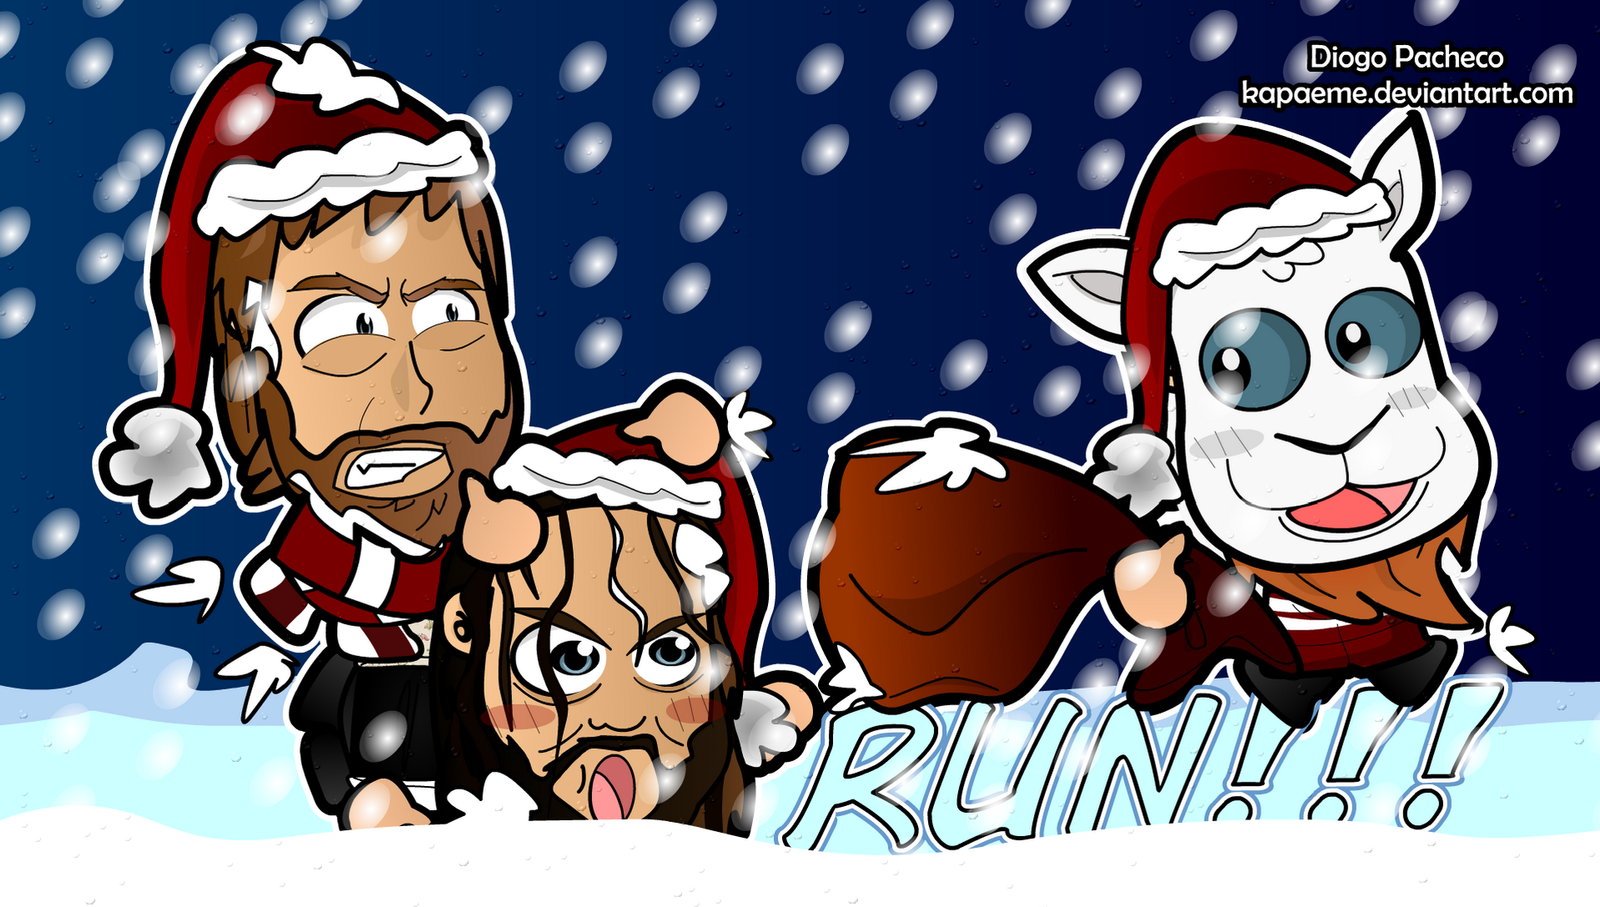 a wyatt and bryan wwe christmas wallpaperkapaeme on deviantart